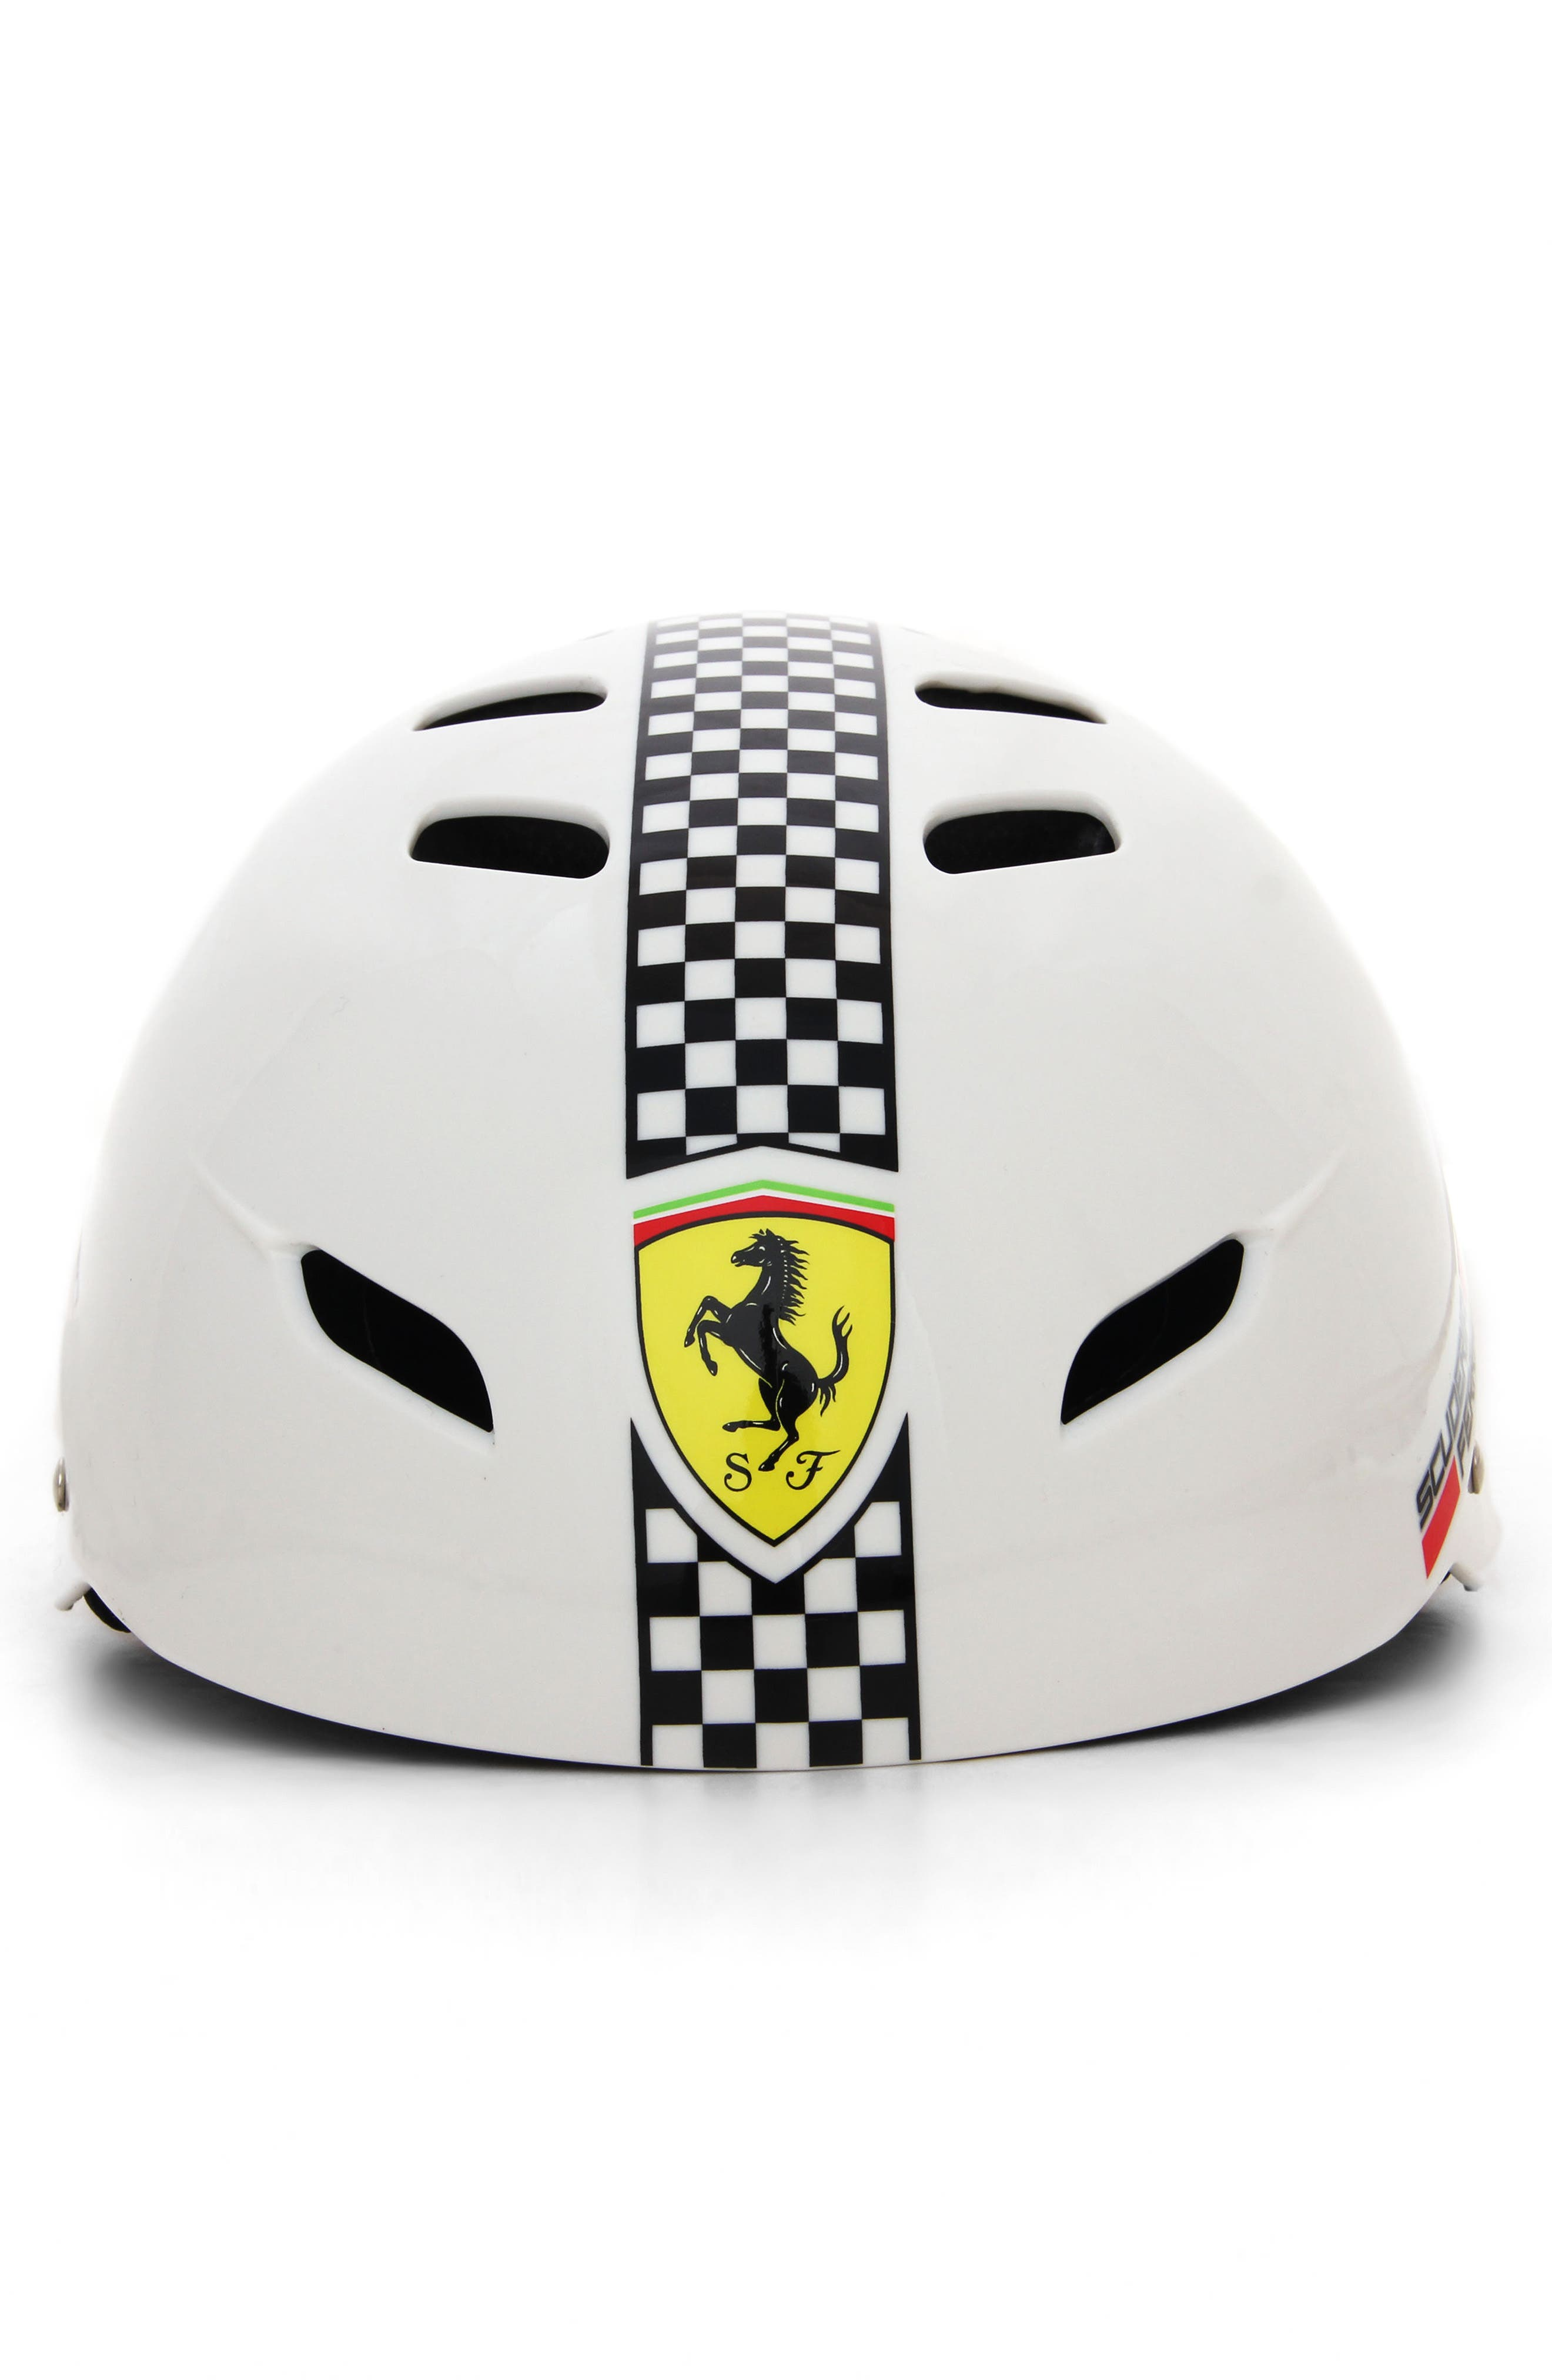 Ferrari F1 Racing Helmet (Kids)